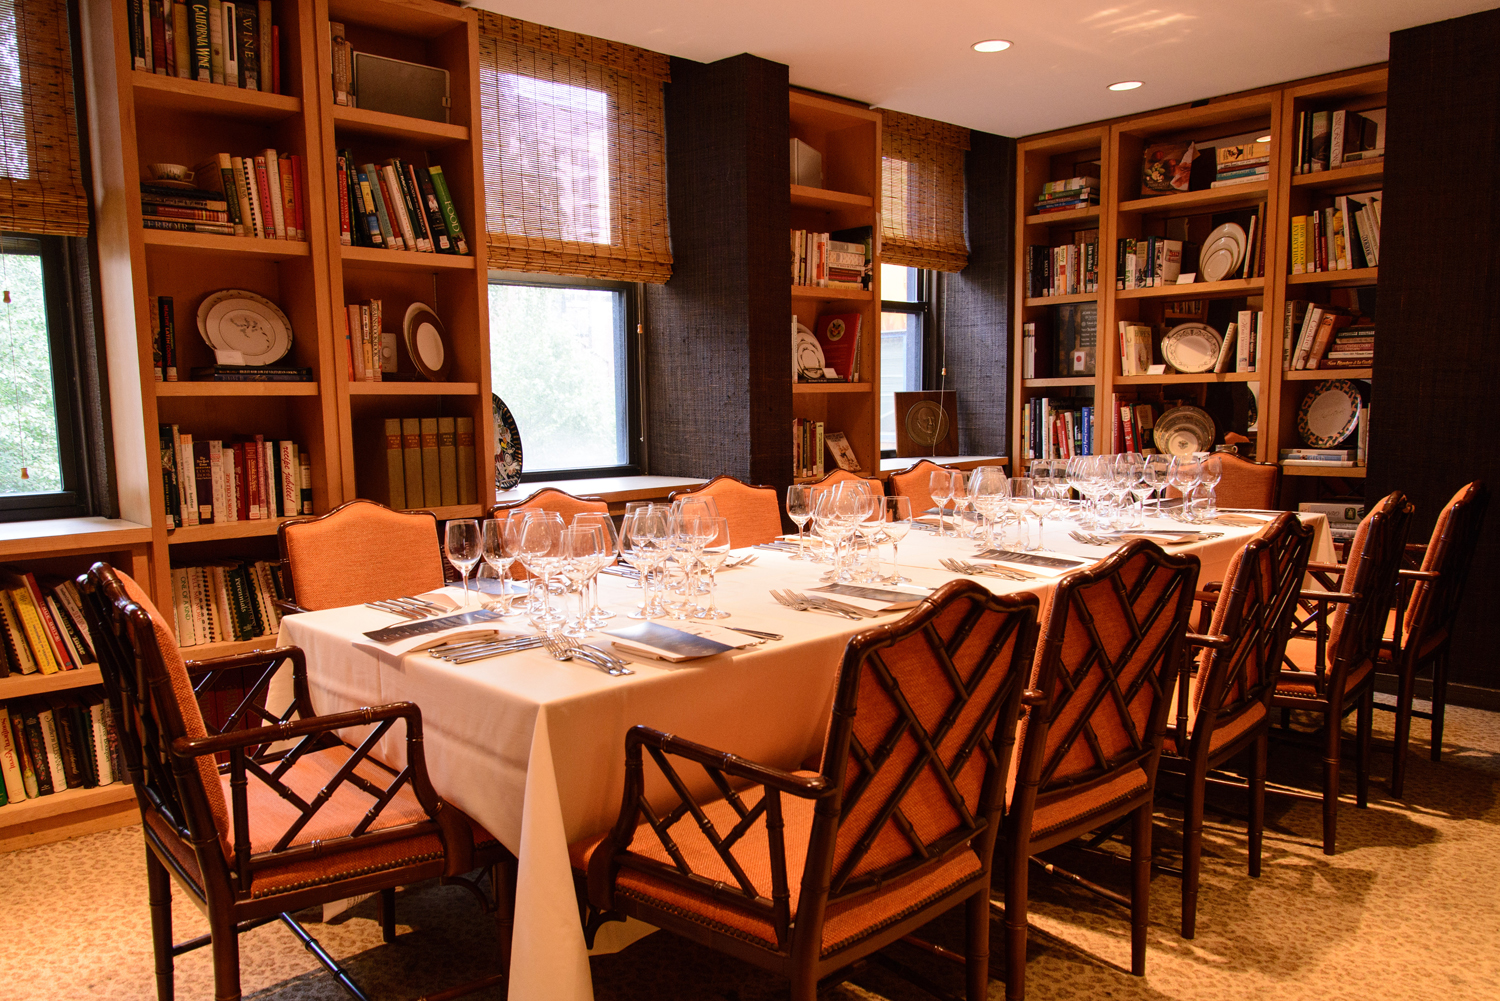 Peter Kump Boardroom event space at The James Beard House in New York City, NYC, NY/NJ Area